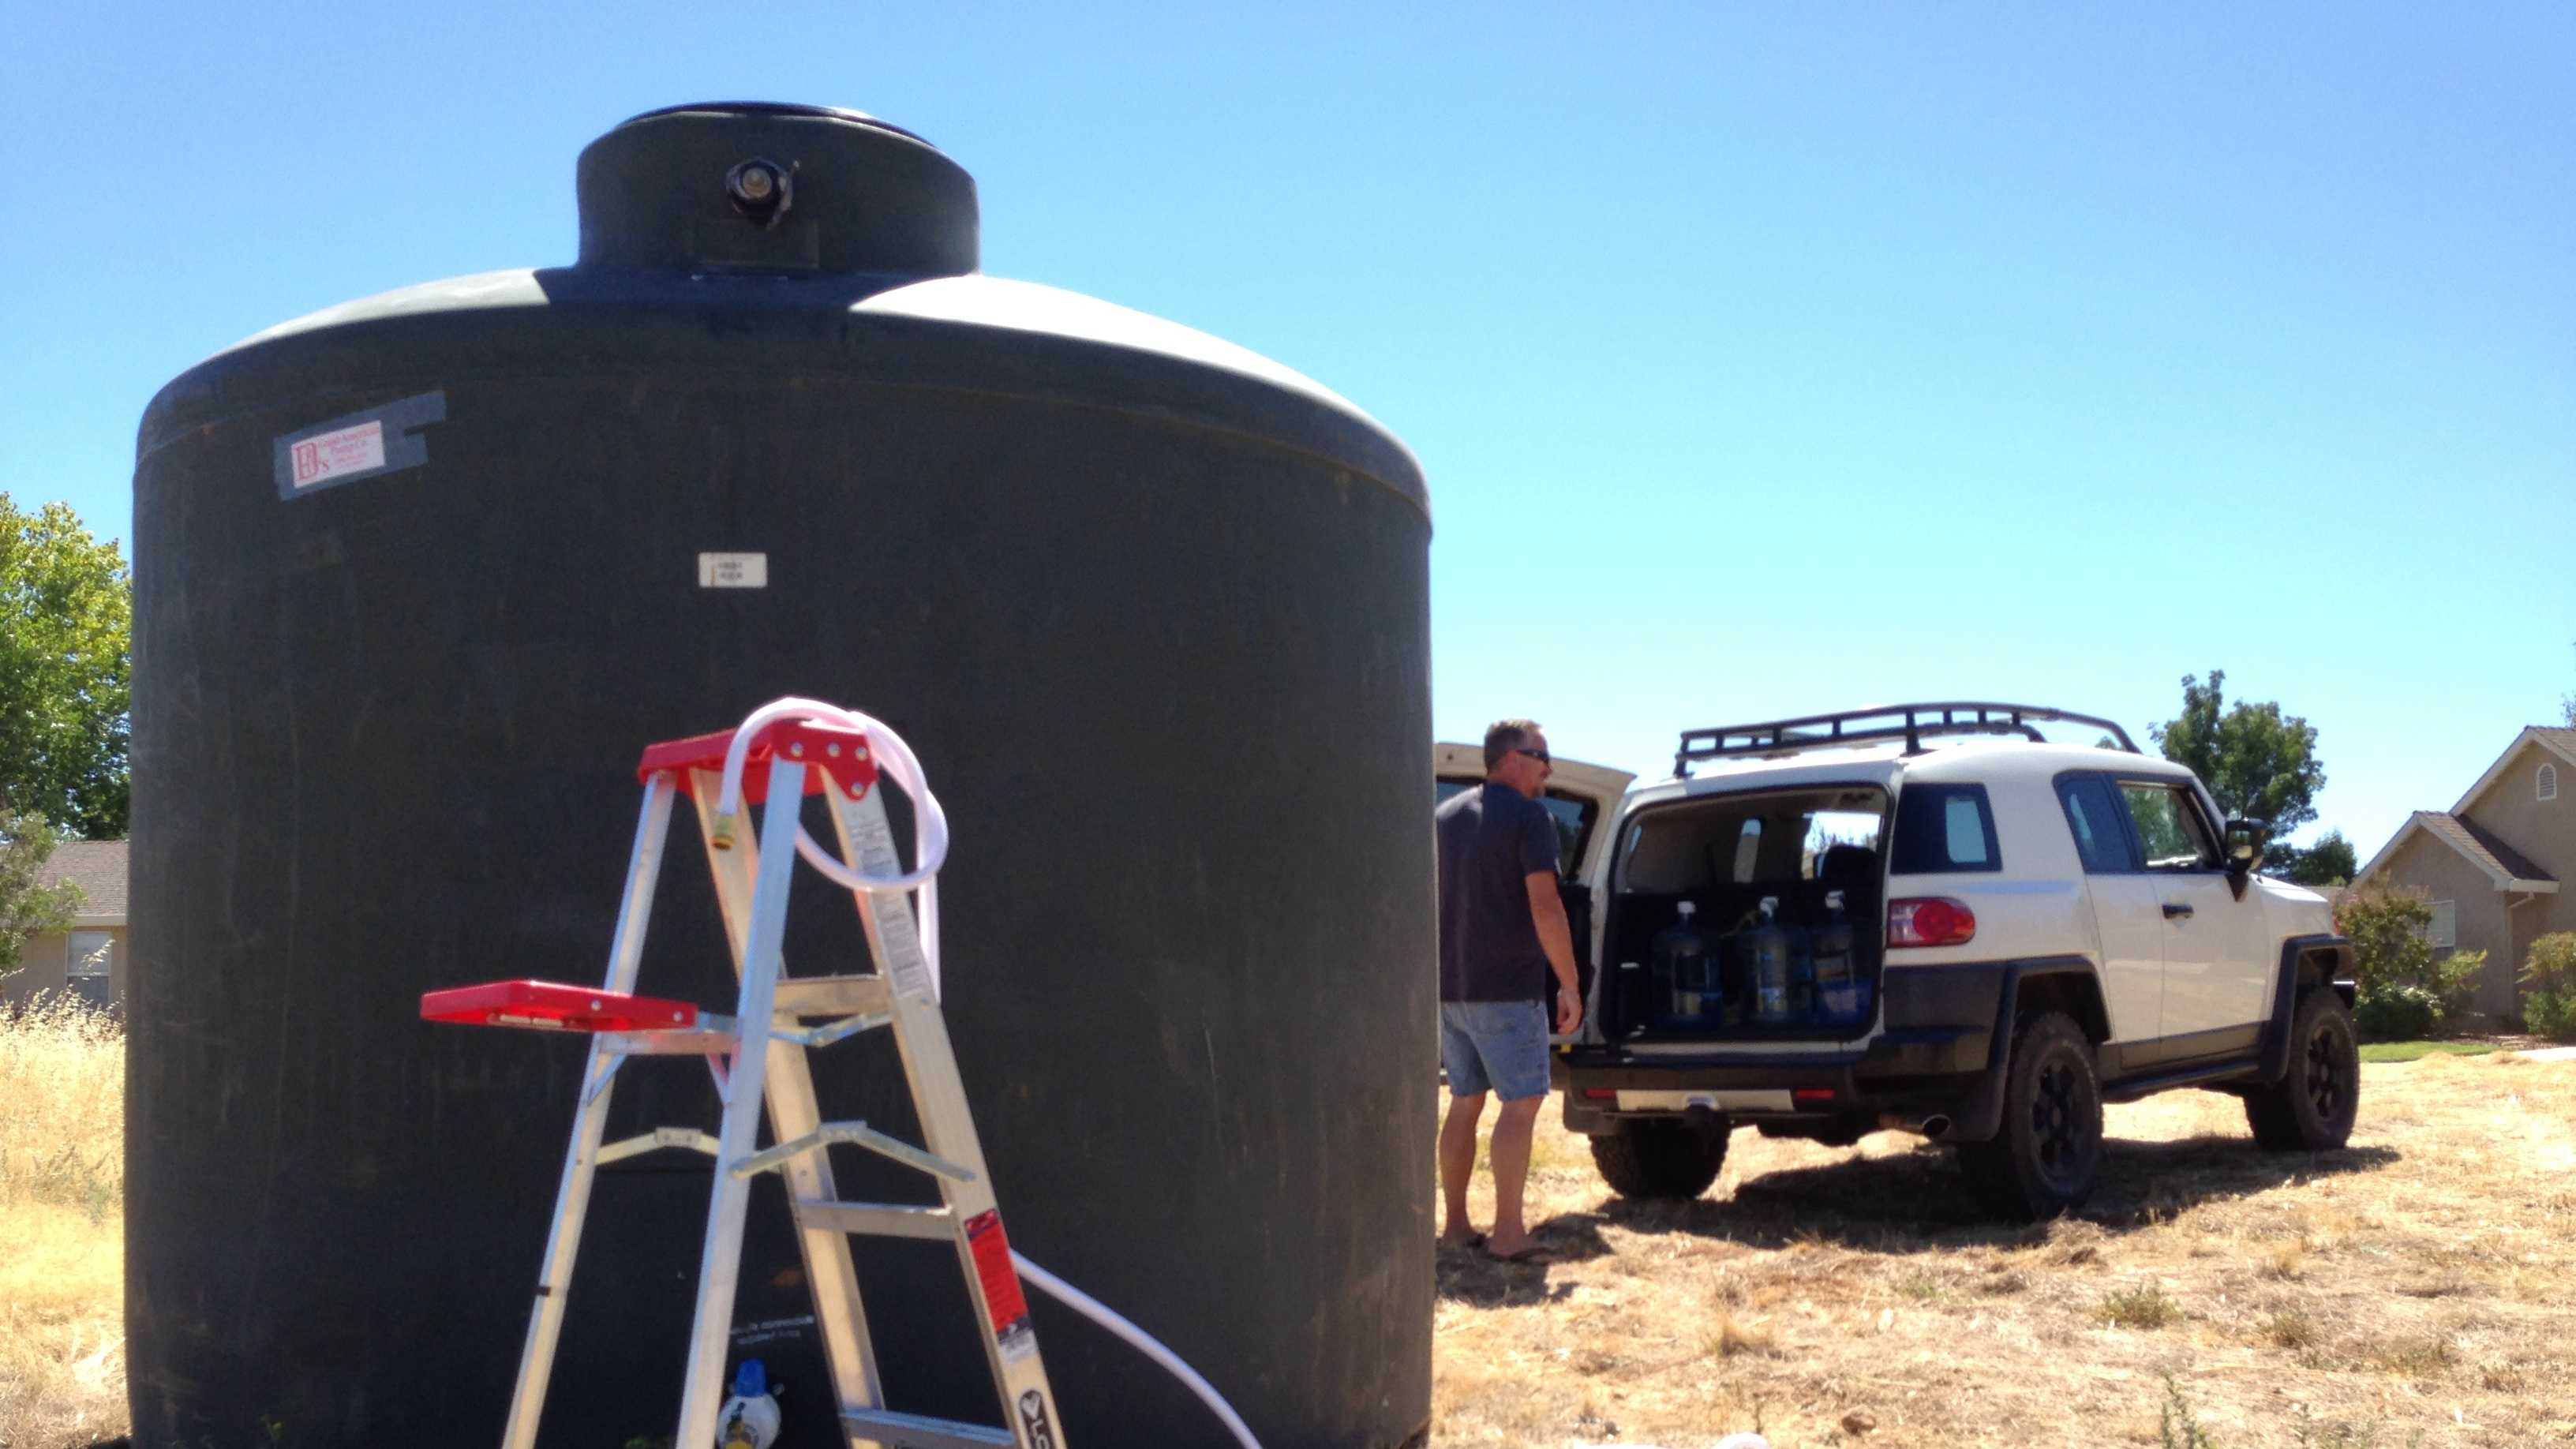 Yuba County officials have delivered a temporary water tank to the residents of Gold Village.